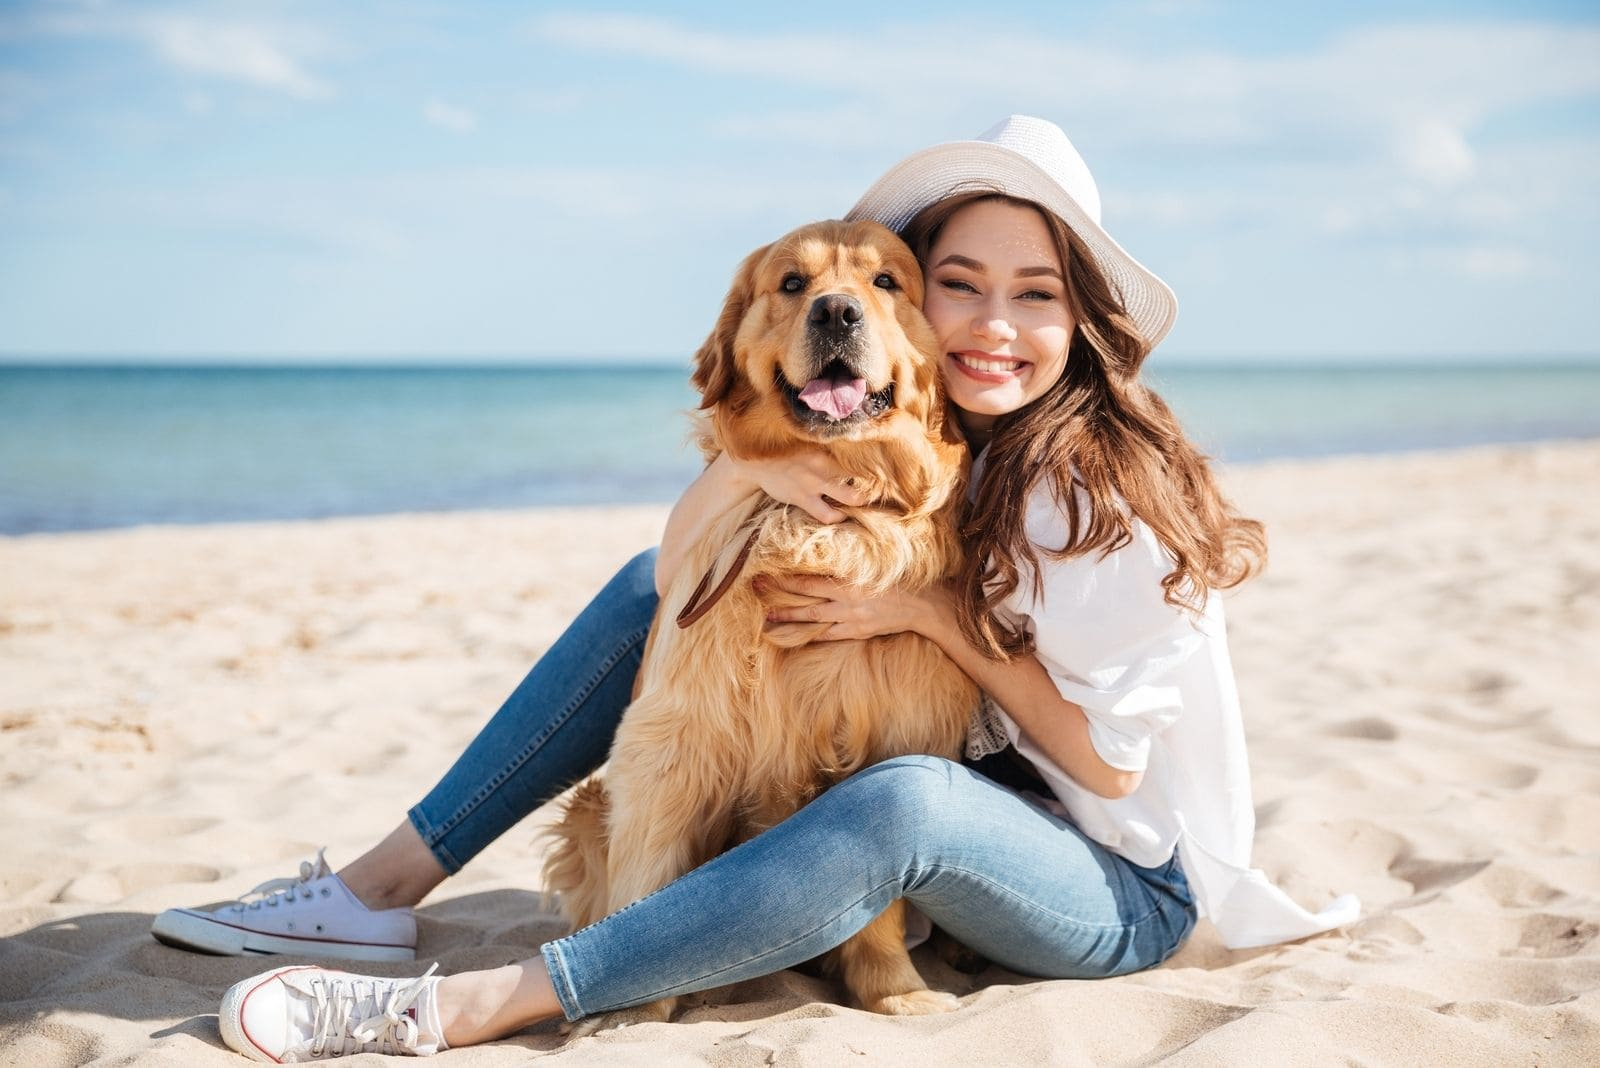 cheerful young woman sitting and embracing a dog in the beach during the day